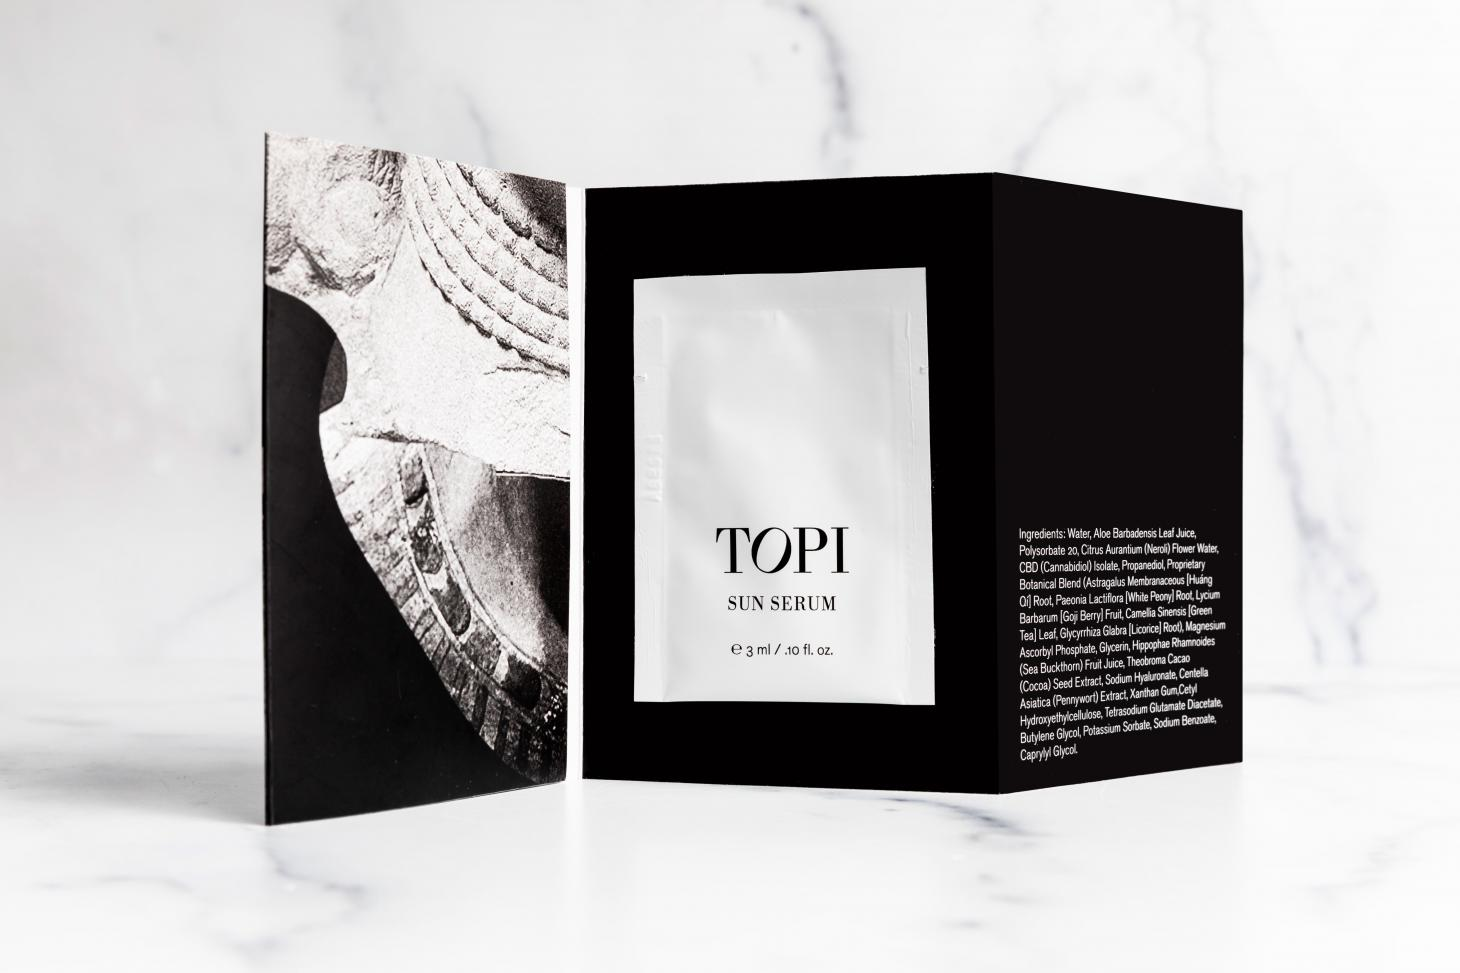 black and white image of envelope that holds Topi climatic skincare